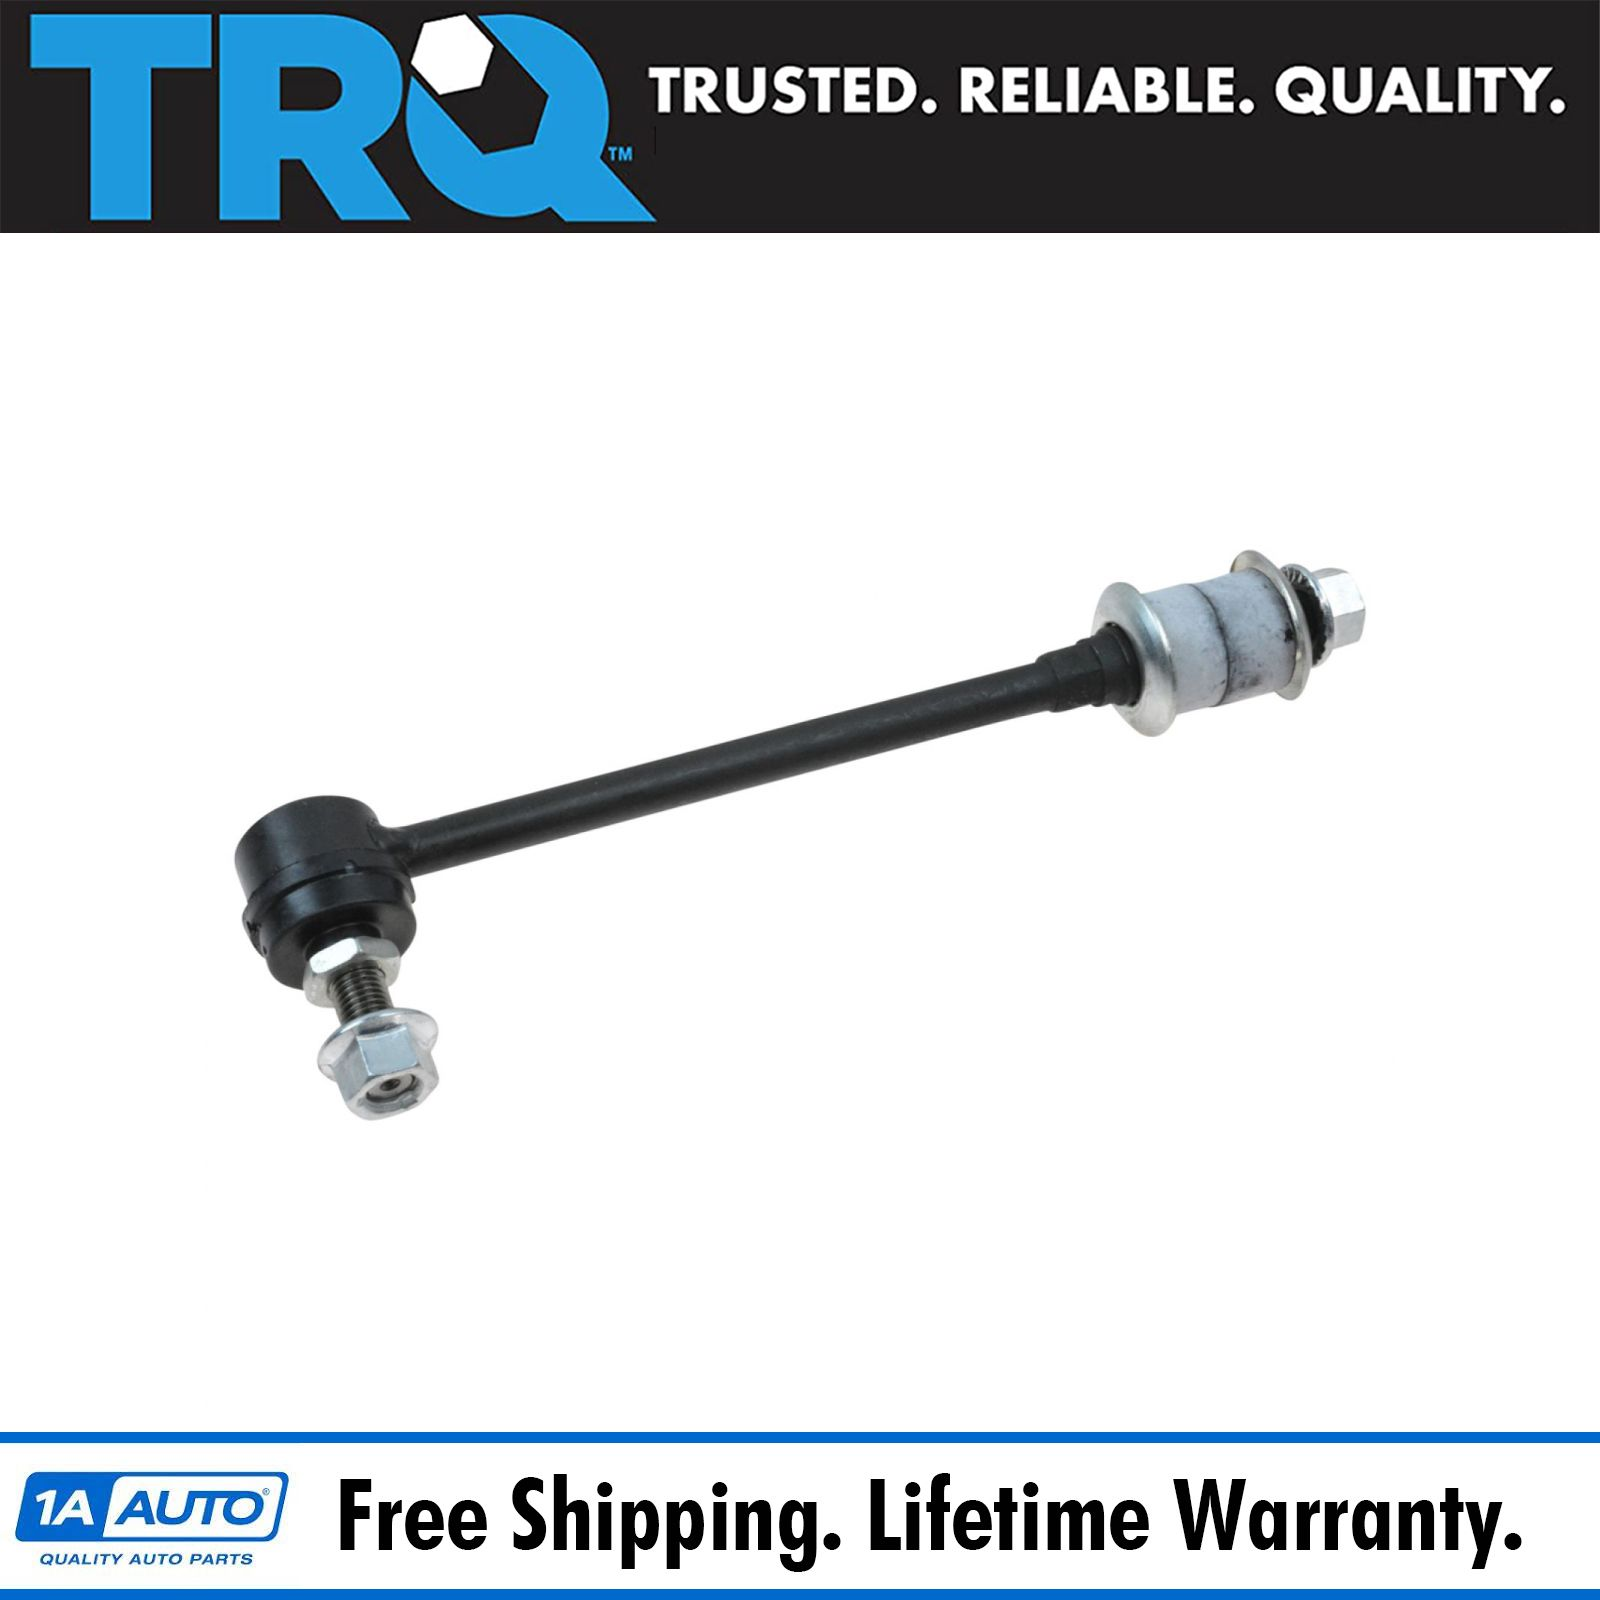 Fit Nissan Pathfinder 1987-2004 Rear Sway Bar Link Right And Left 2Pcs Kit